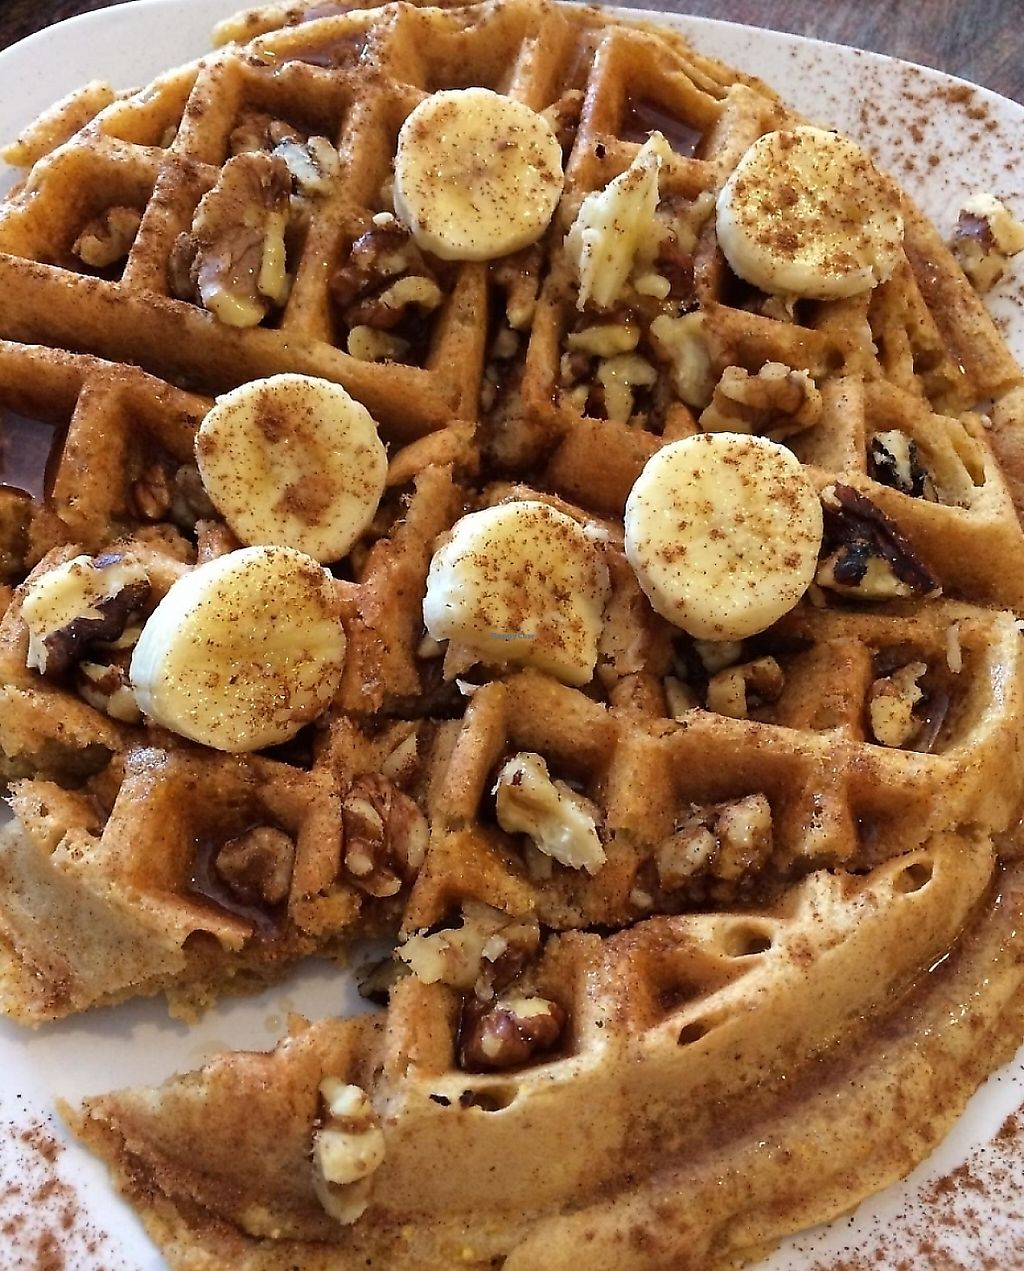 """Photo of PuraVegan  by <a href=""""/members/profile/luvs2EAT"""">luvs2EAT</a> <br/>Tried the Vegan Waffle for breakfast. Oh my! <br/> May 8, 2014  - <a href='/contact/abuse/image/26482/217572'>Report</a>"""